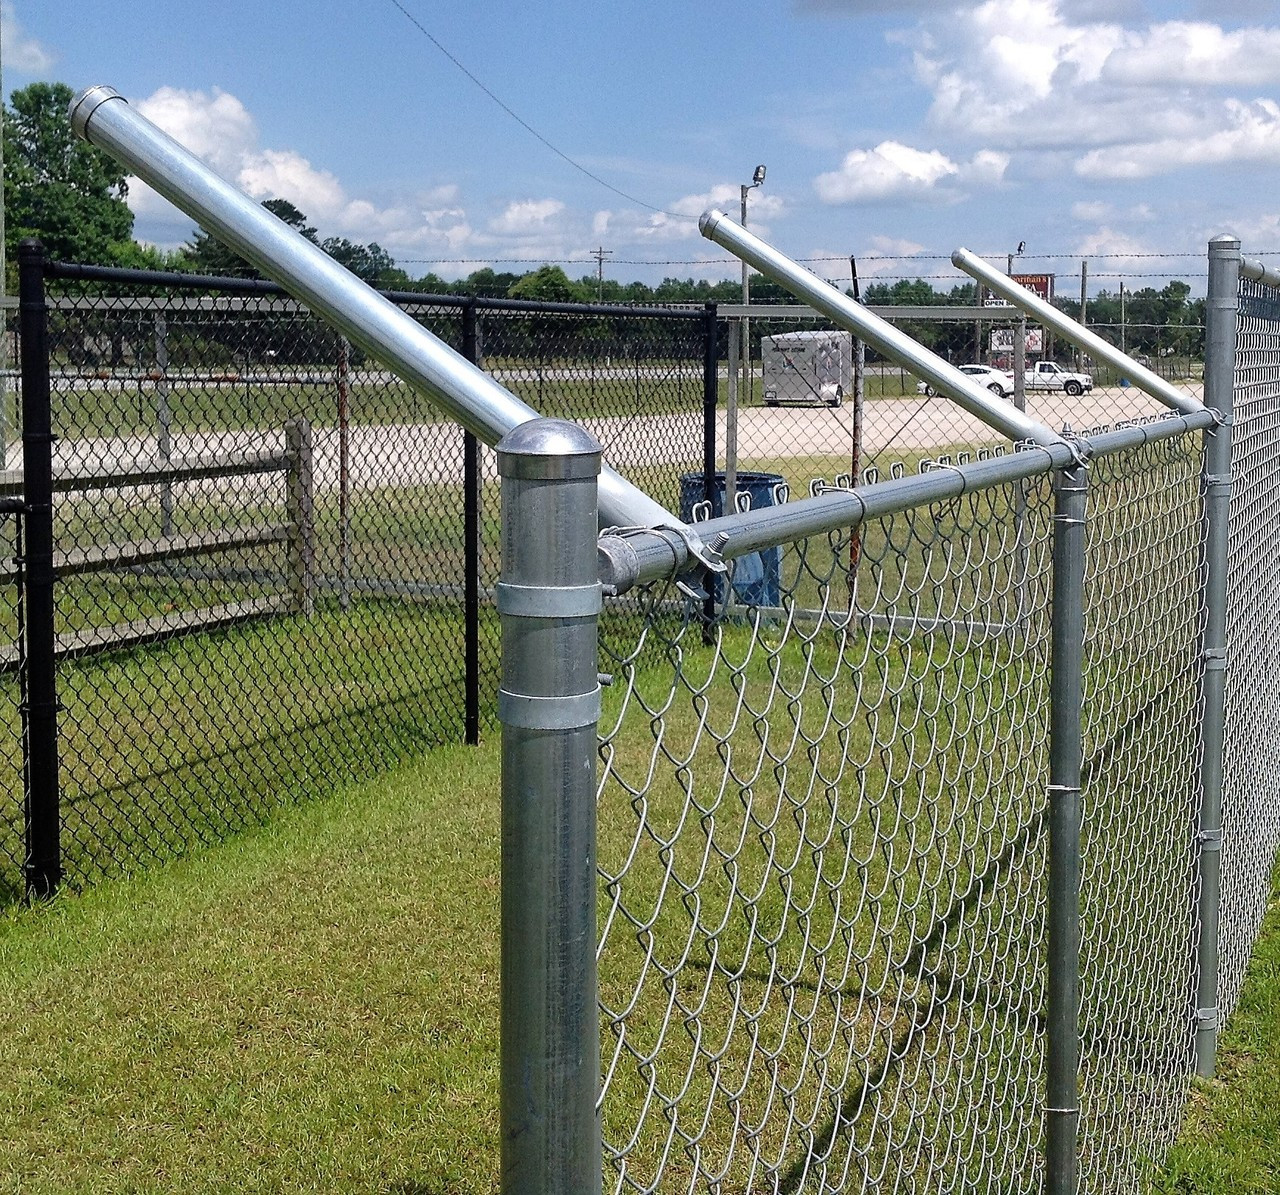 Wire Fencing Extend A Post Extensions For Chain Link Fence Set Of 9